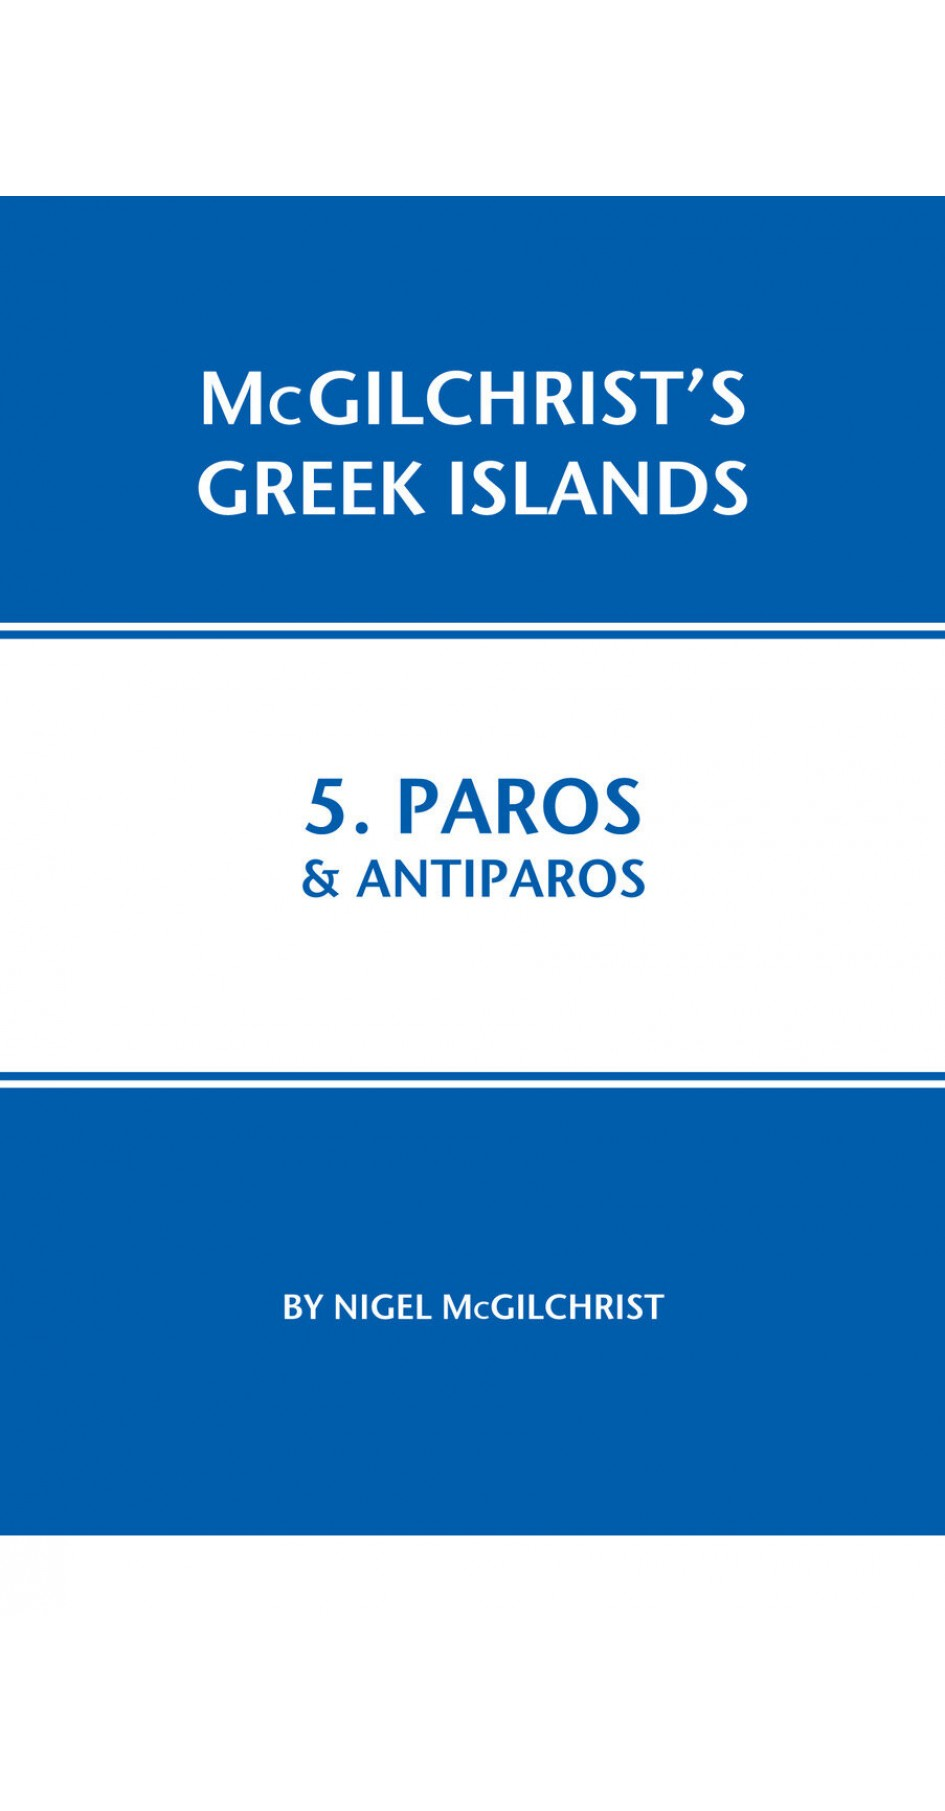 05. Paros & Antiparos - McGilchrist's Greek Islands